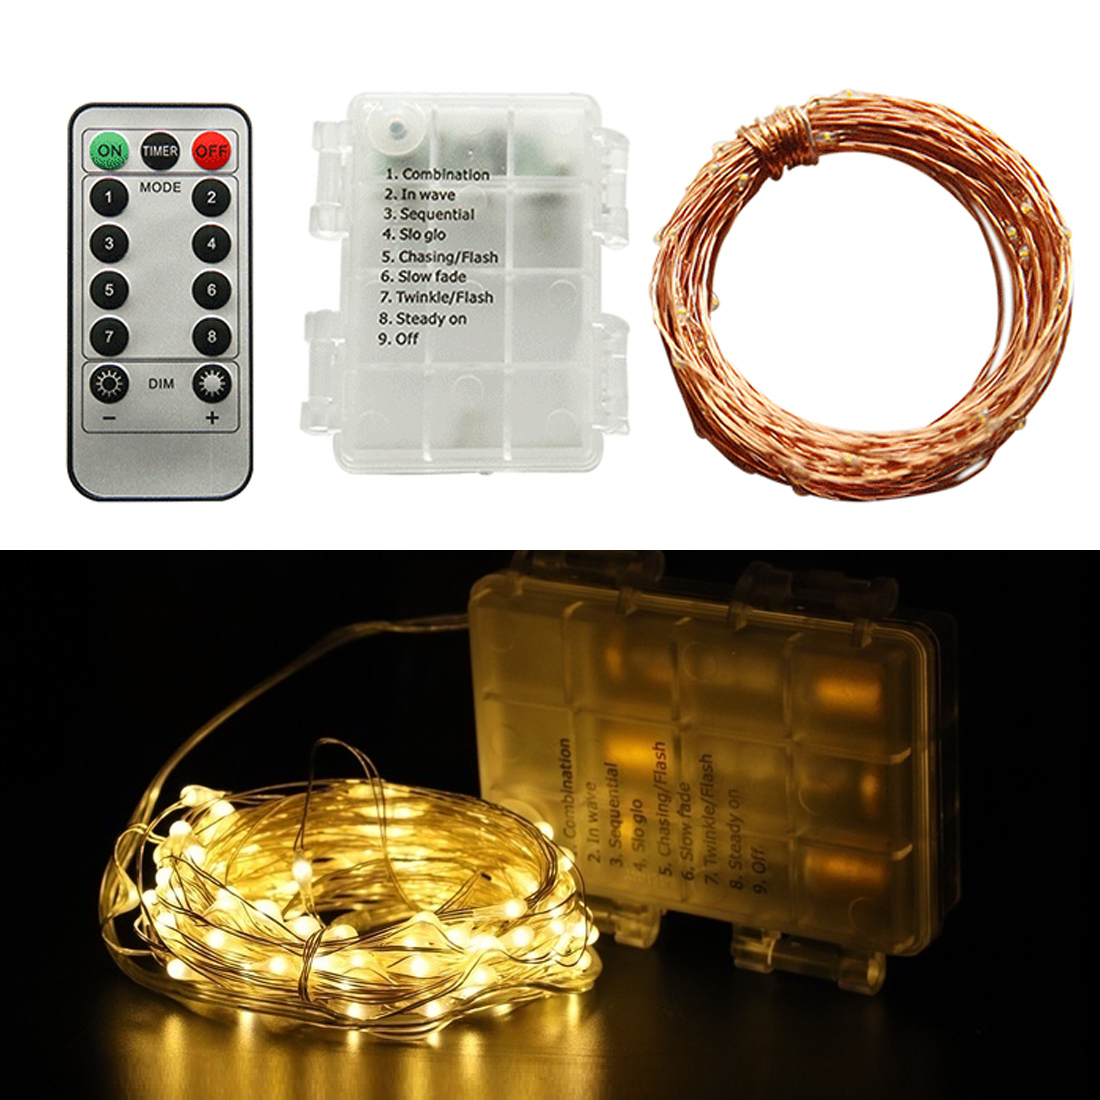 5/10M Waterproof Remote Control Fairy Lights Battery Operated LED Lights Decoration 8 Mode Timer String Copper Wire Christmas5/10M Waterproof Remote Control Fairy Lights Battery Operated LED Lights Decoration 8 Mode Timer String Copper Wire Christmas